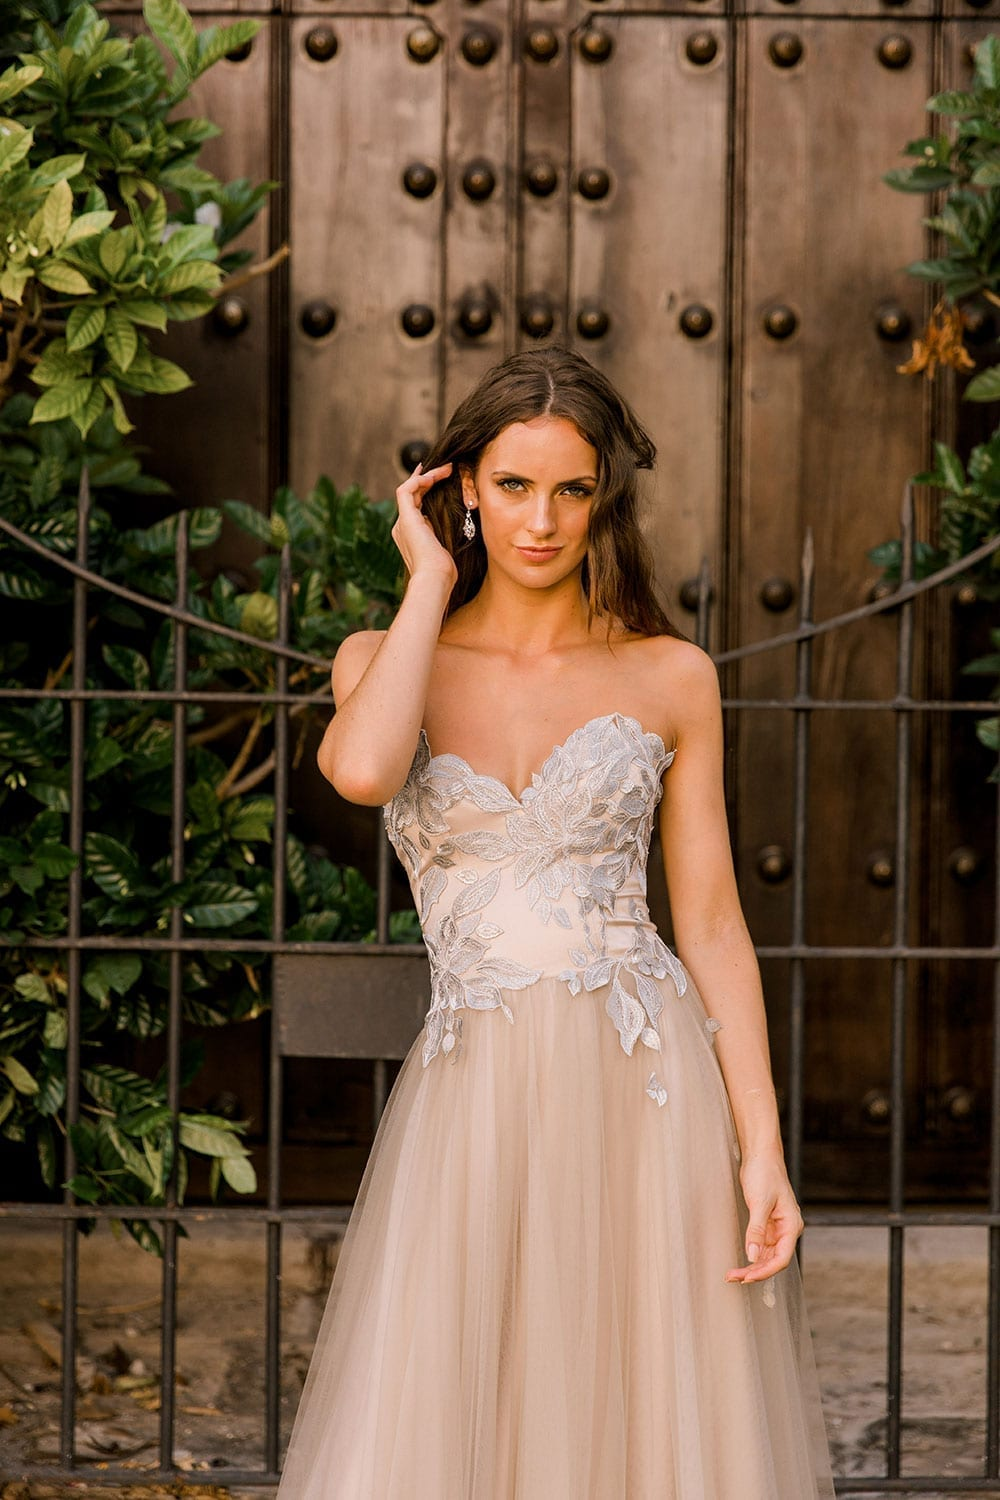 Model wearing Vinka Design Narnia Wedding Dress, a Strapless Tulle Gown with Silver Embroidered Lace Detail close up in front of a wooden doorway in Cuba